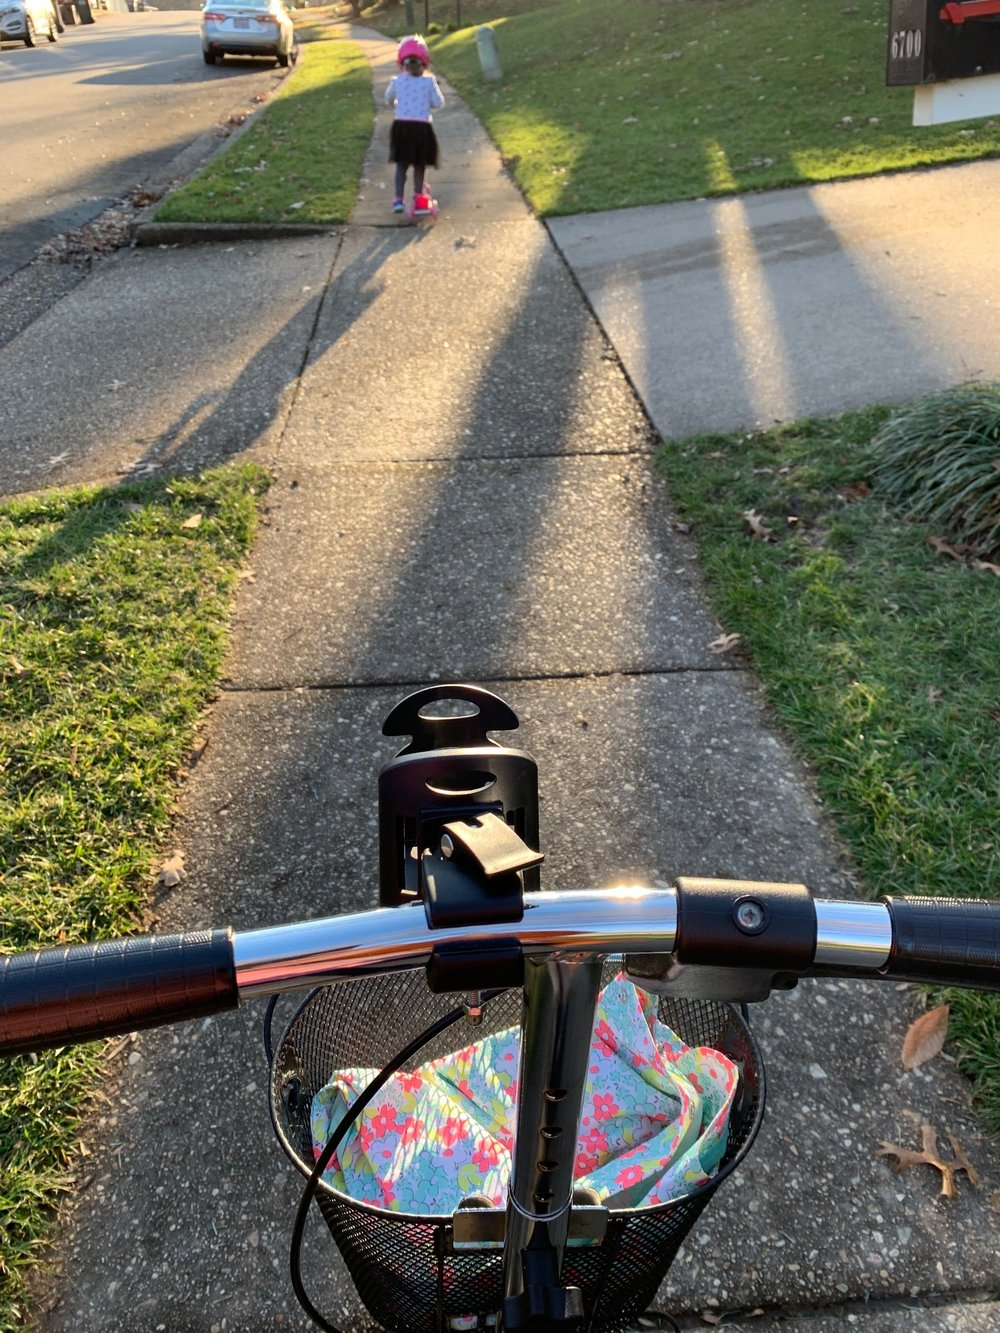 Nadia and I took advantage of the nice weather one afternoon this past week to scooter together around the neighborhood on our scooters. She was only a little bit faster than I was up the hill!